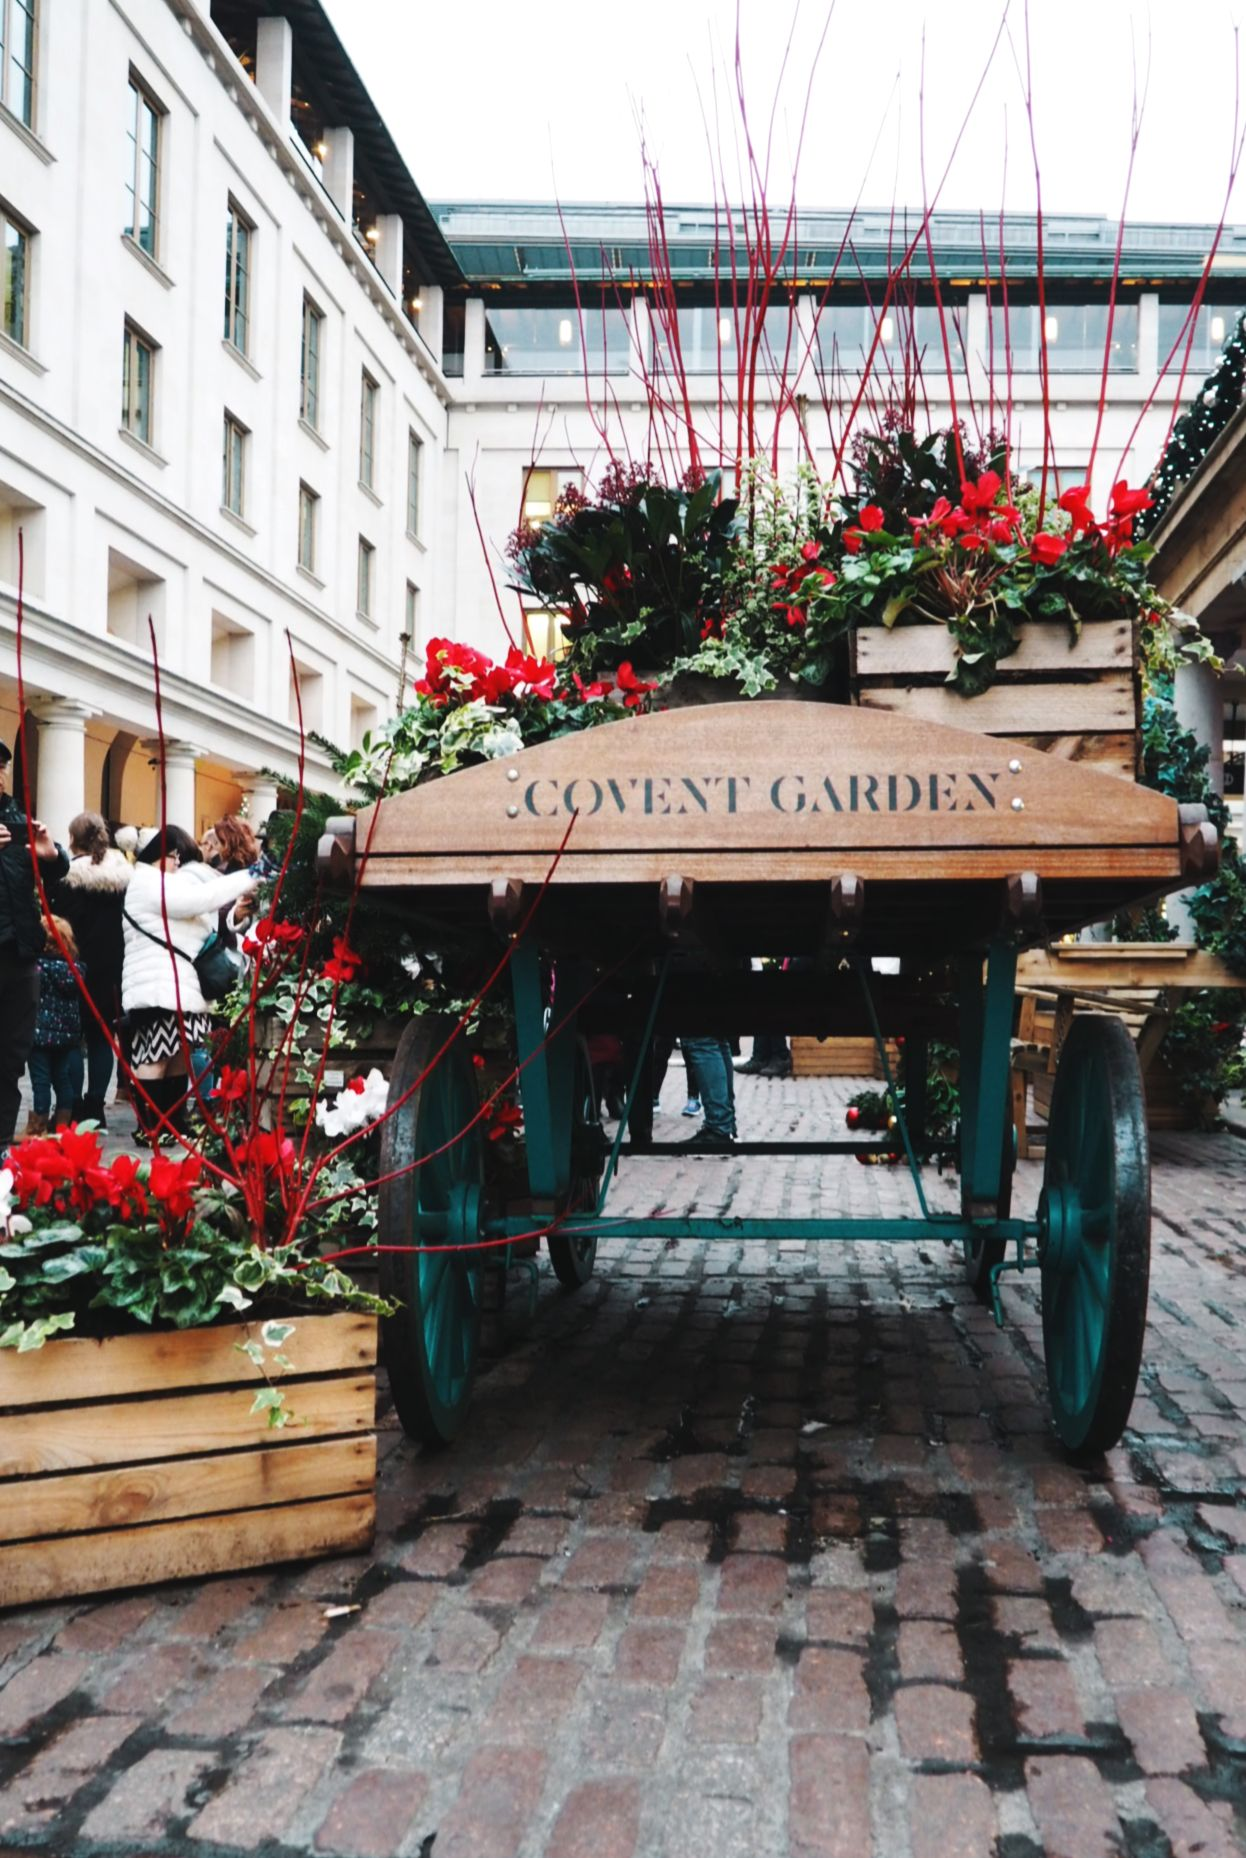 What to do near Covent Garden, London